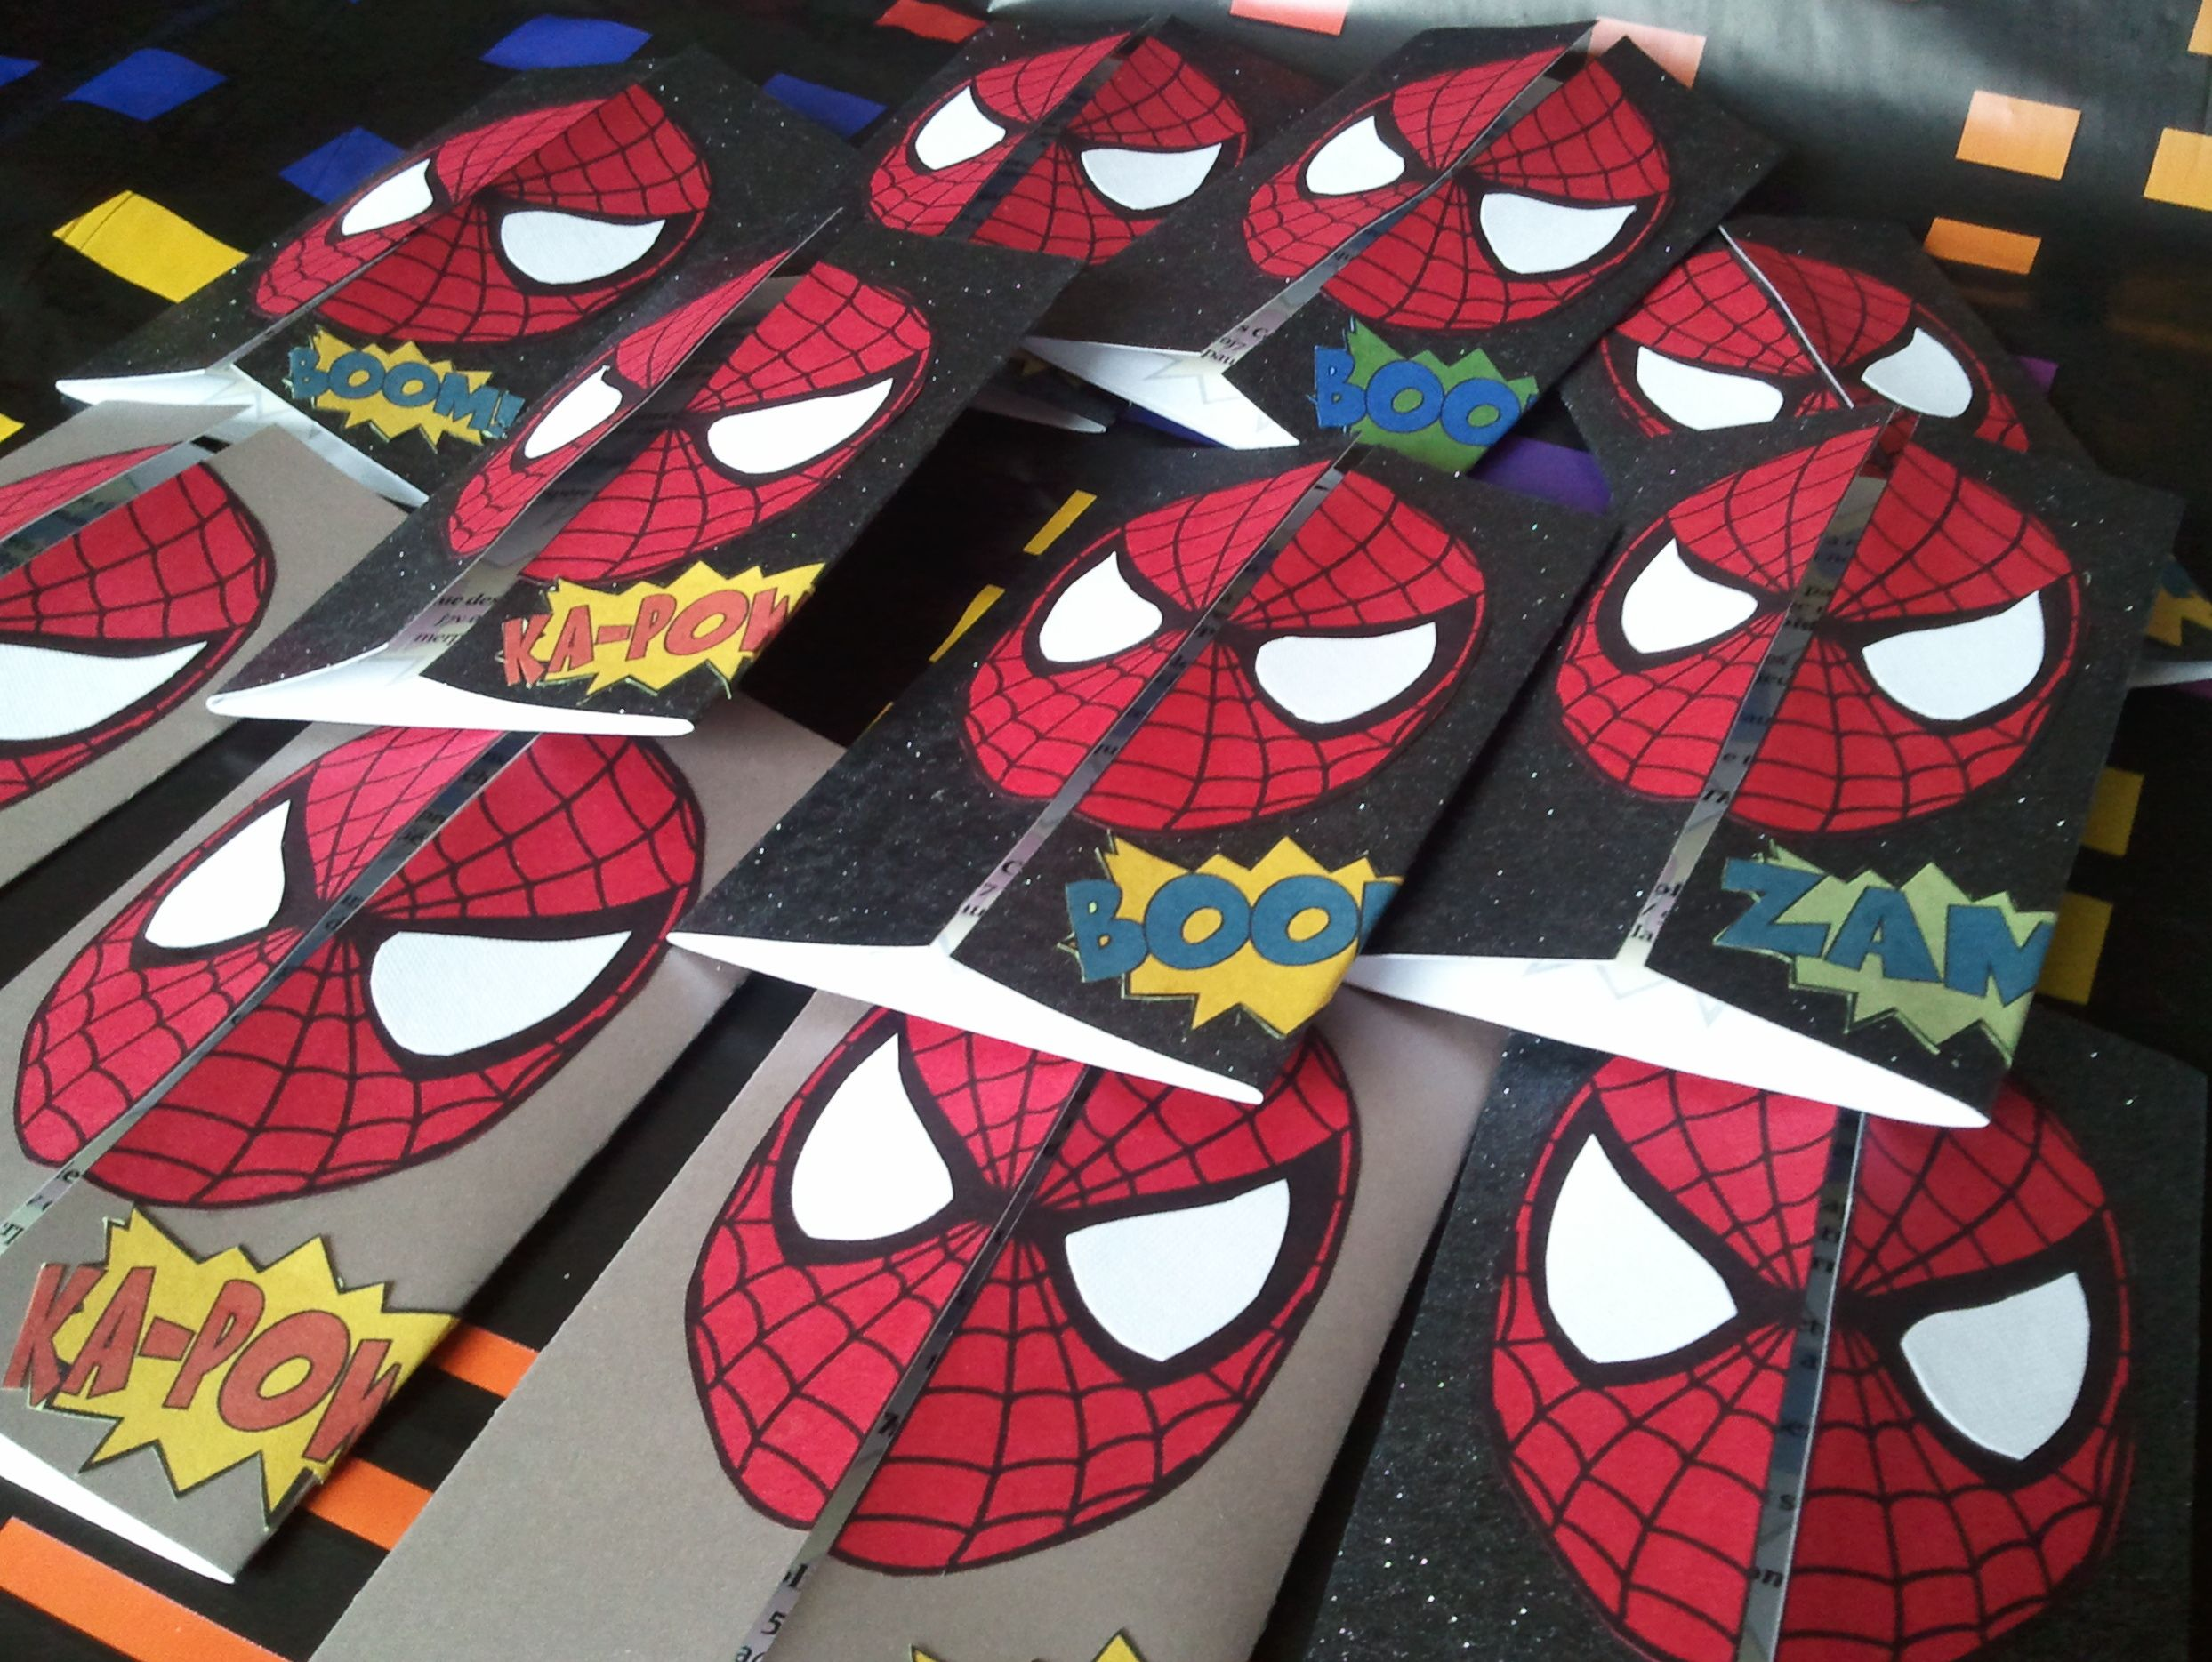 handmadest birthday party invitations%0A spiderman handmade birthday party invitations